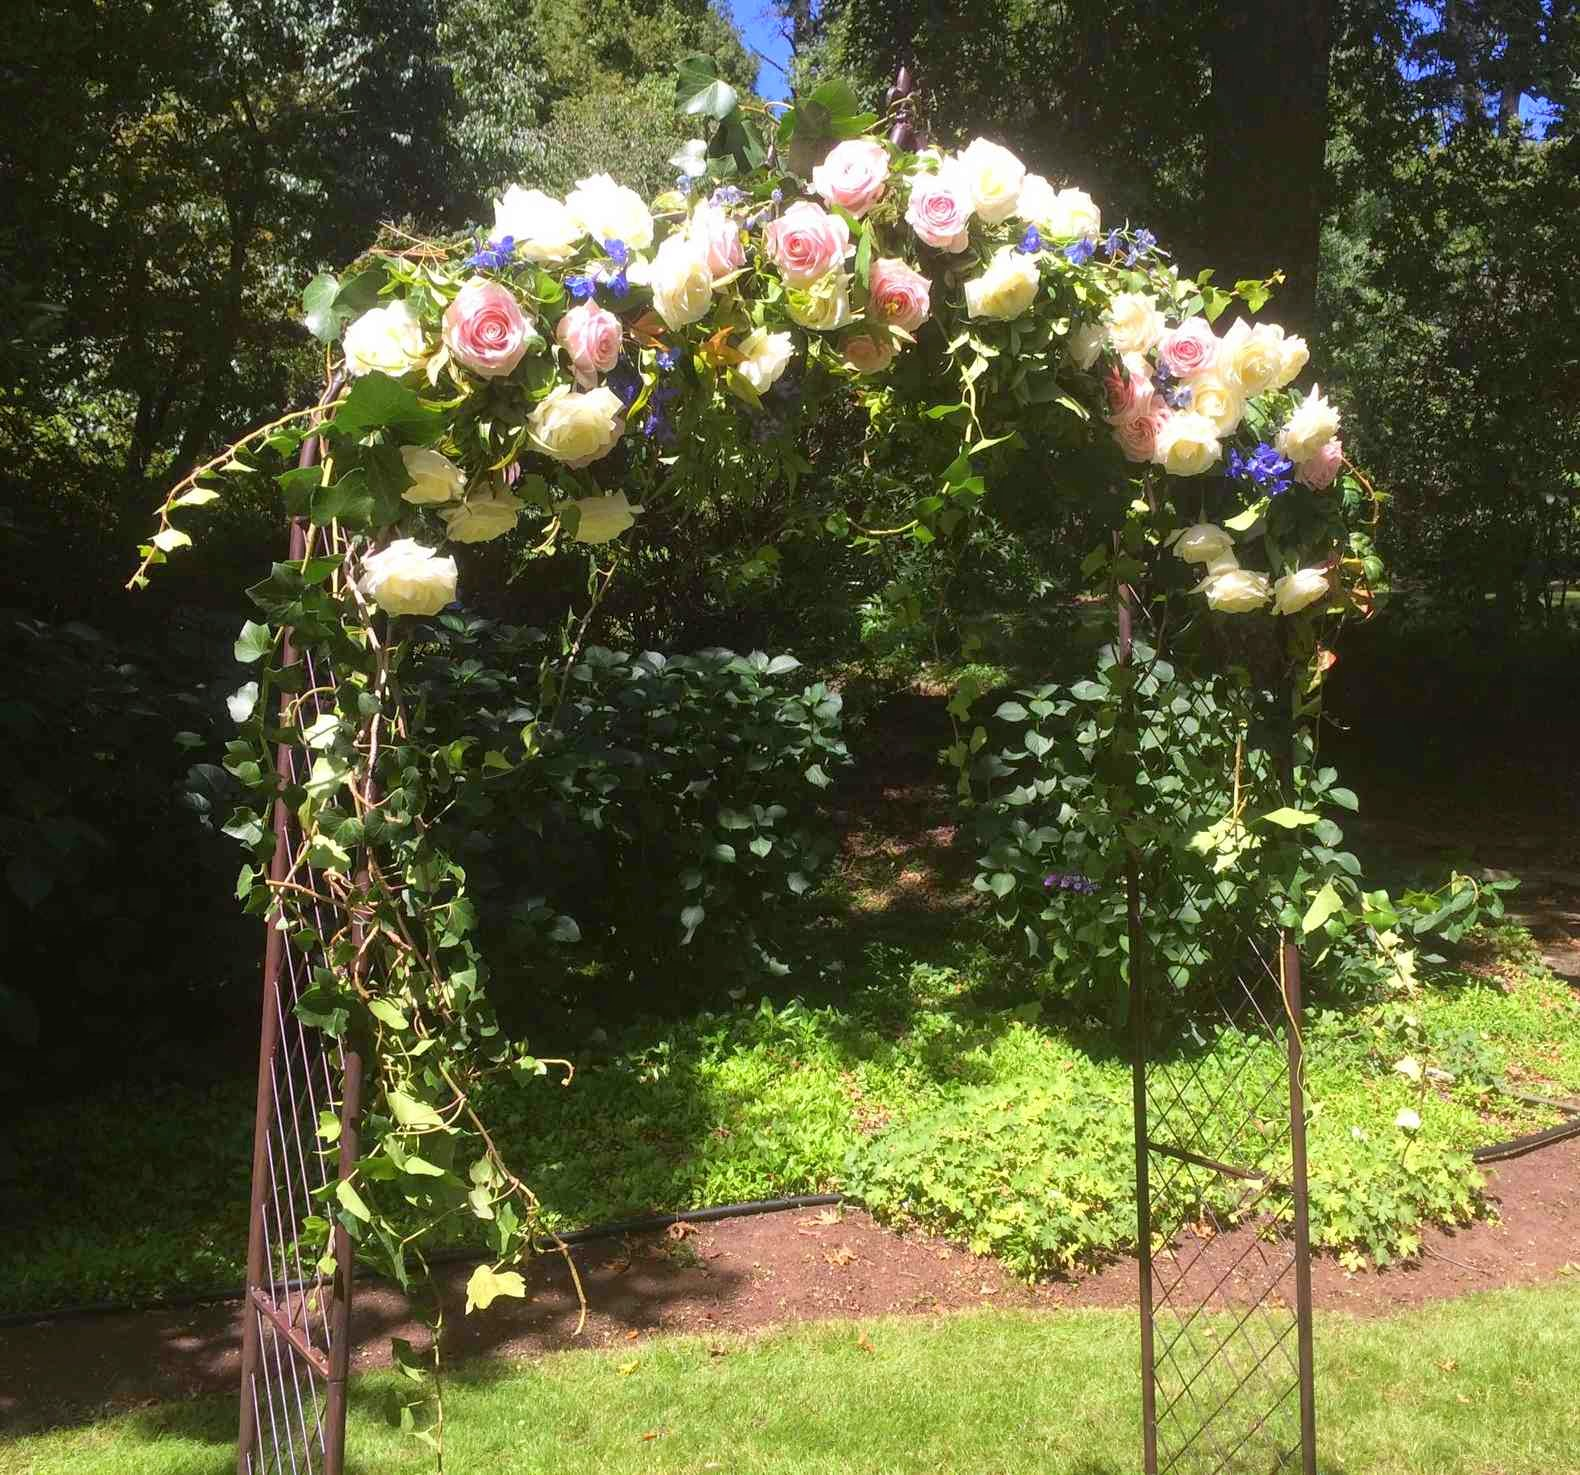 Wedding Arches With Flowers: ...with A Little Flower: Garden Wedding Arches & Details